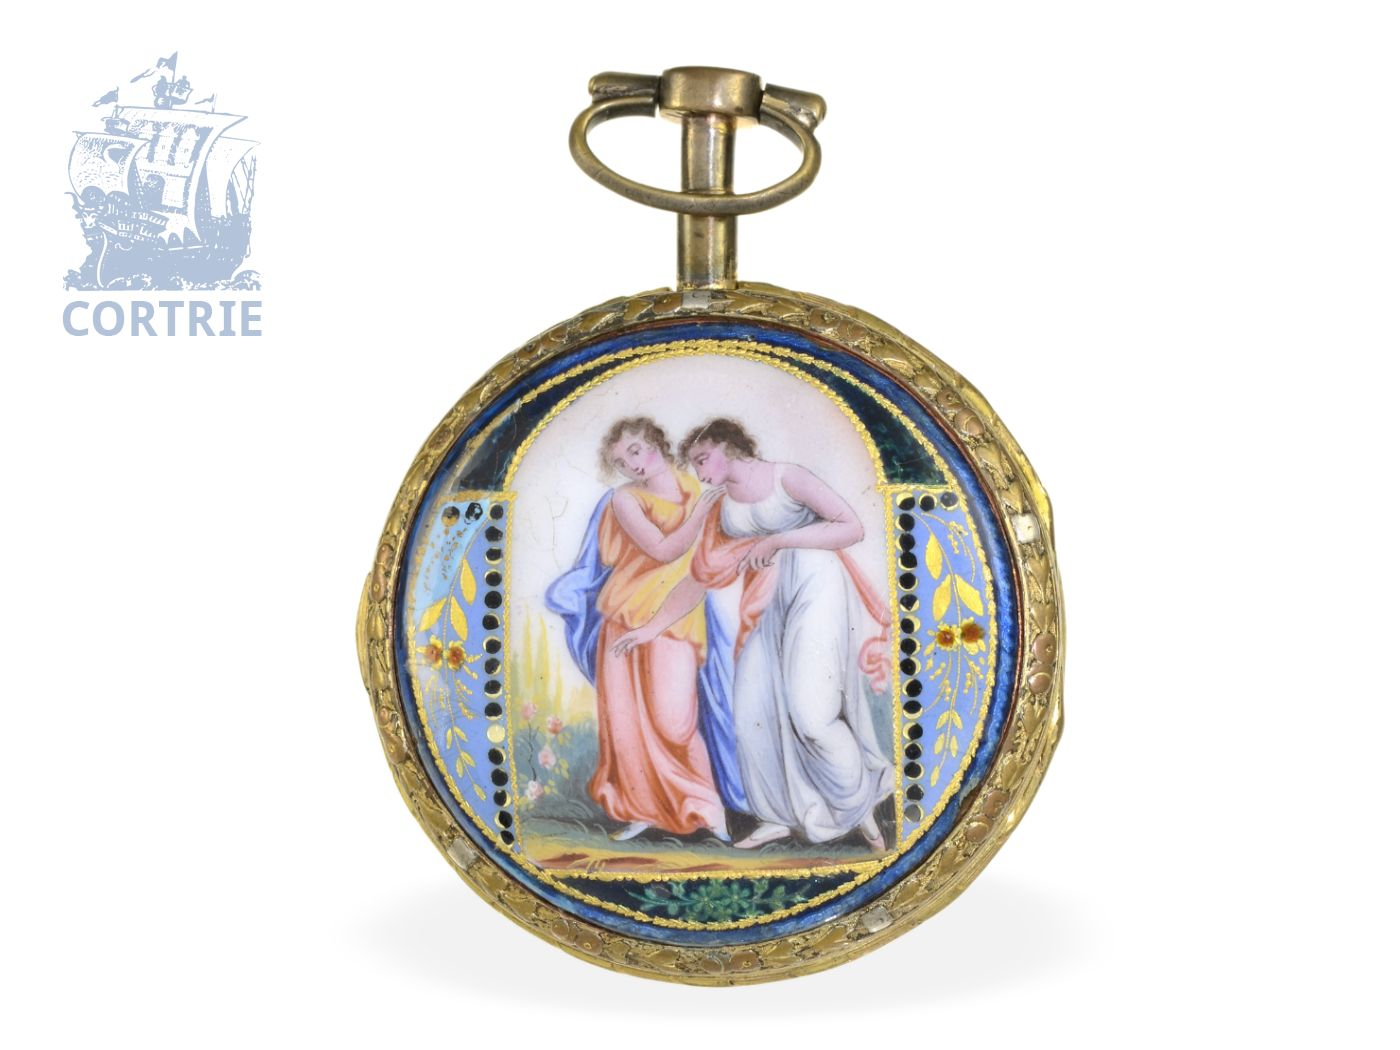 Pocket watch: fine signed enamel verge watch, important Geneva maker, Esquivillon et Deschoudens à Genève ca. 1780-